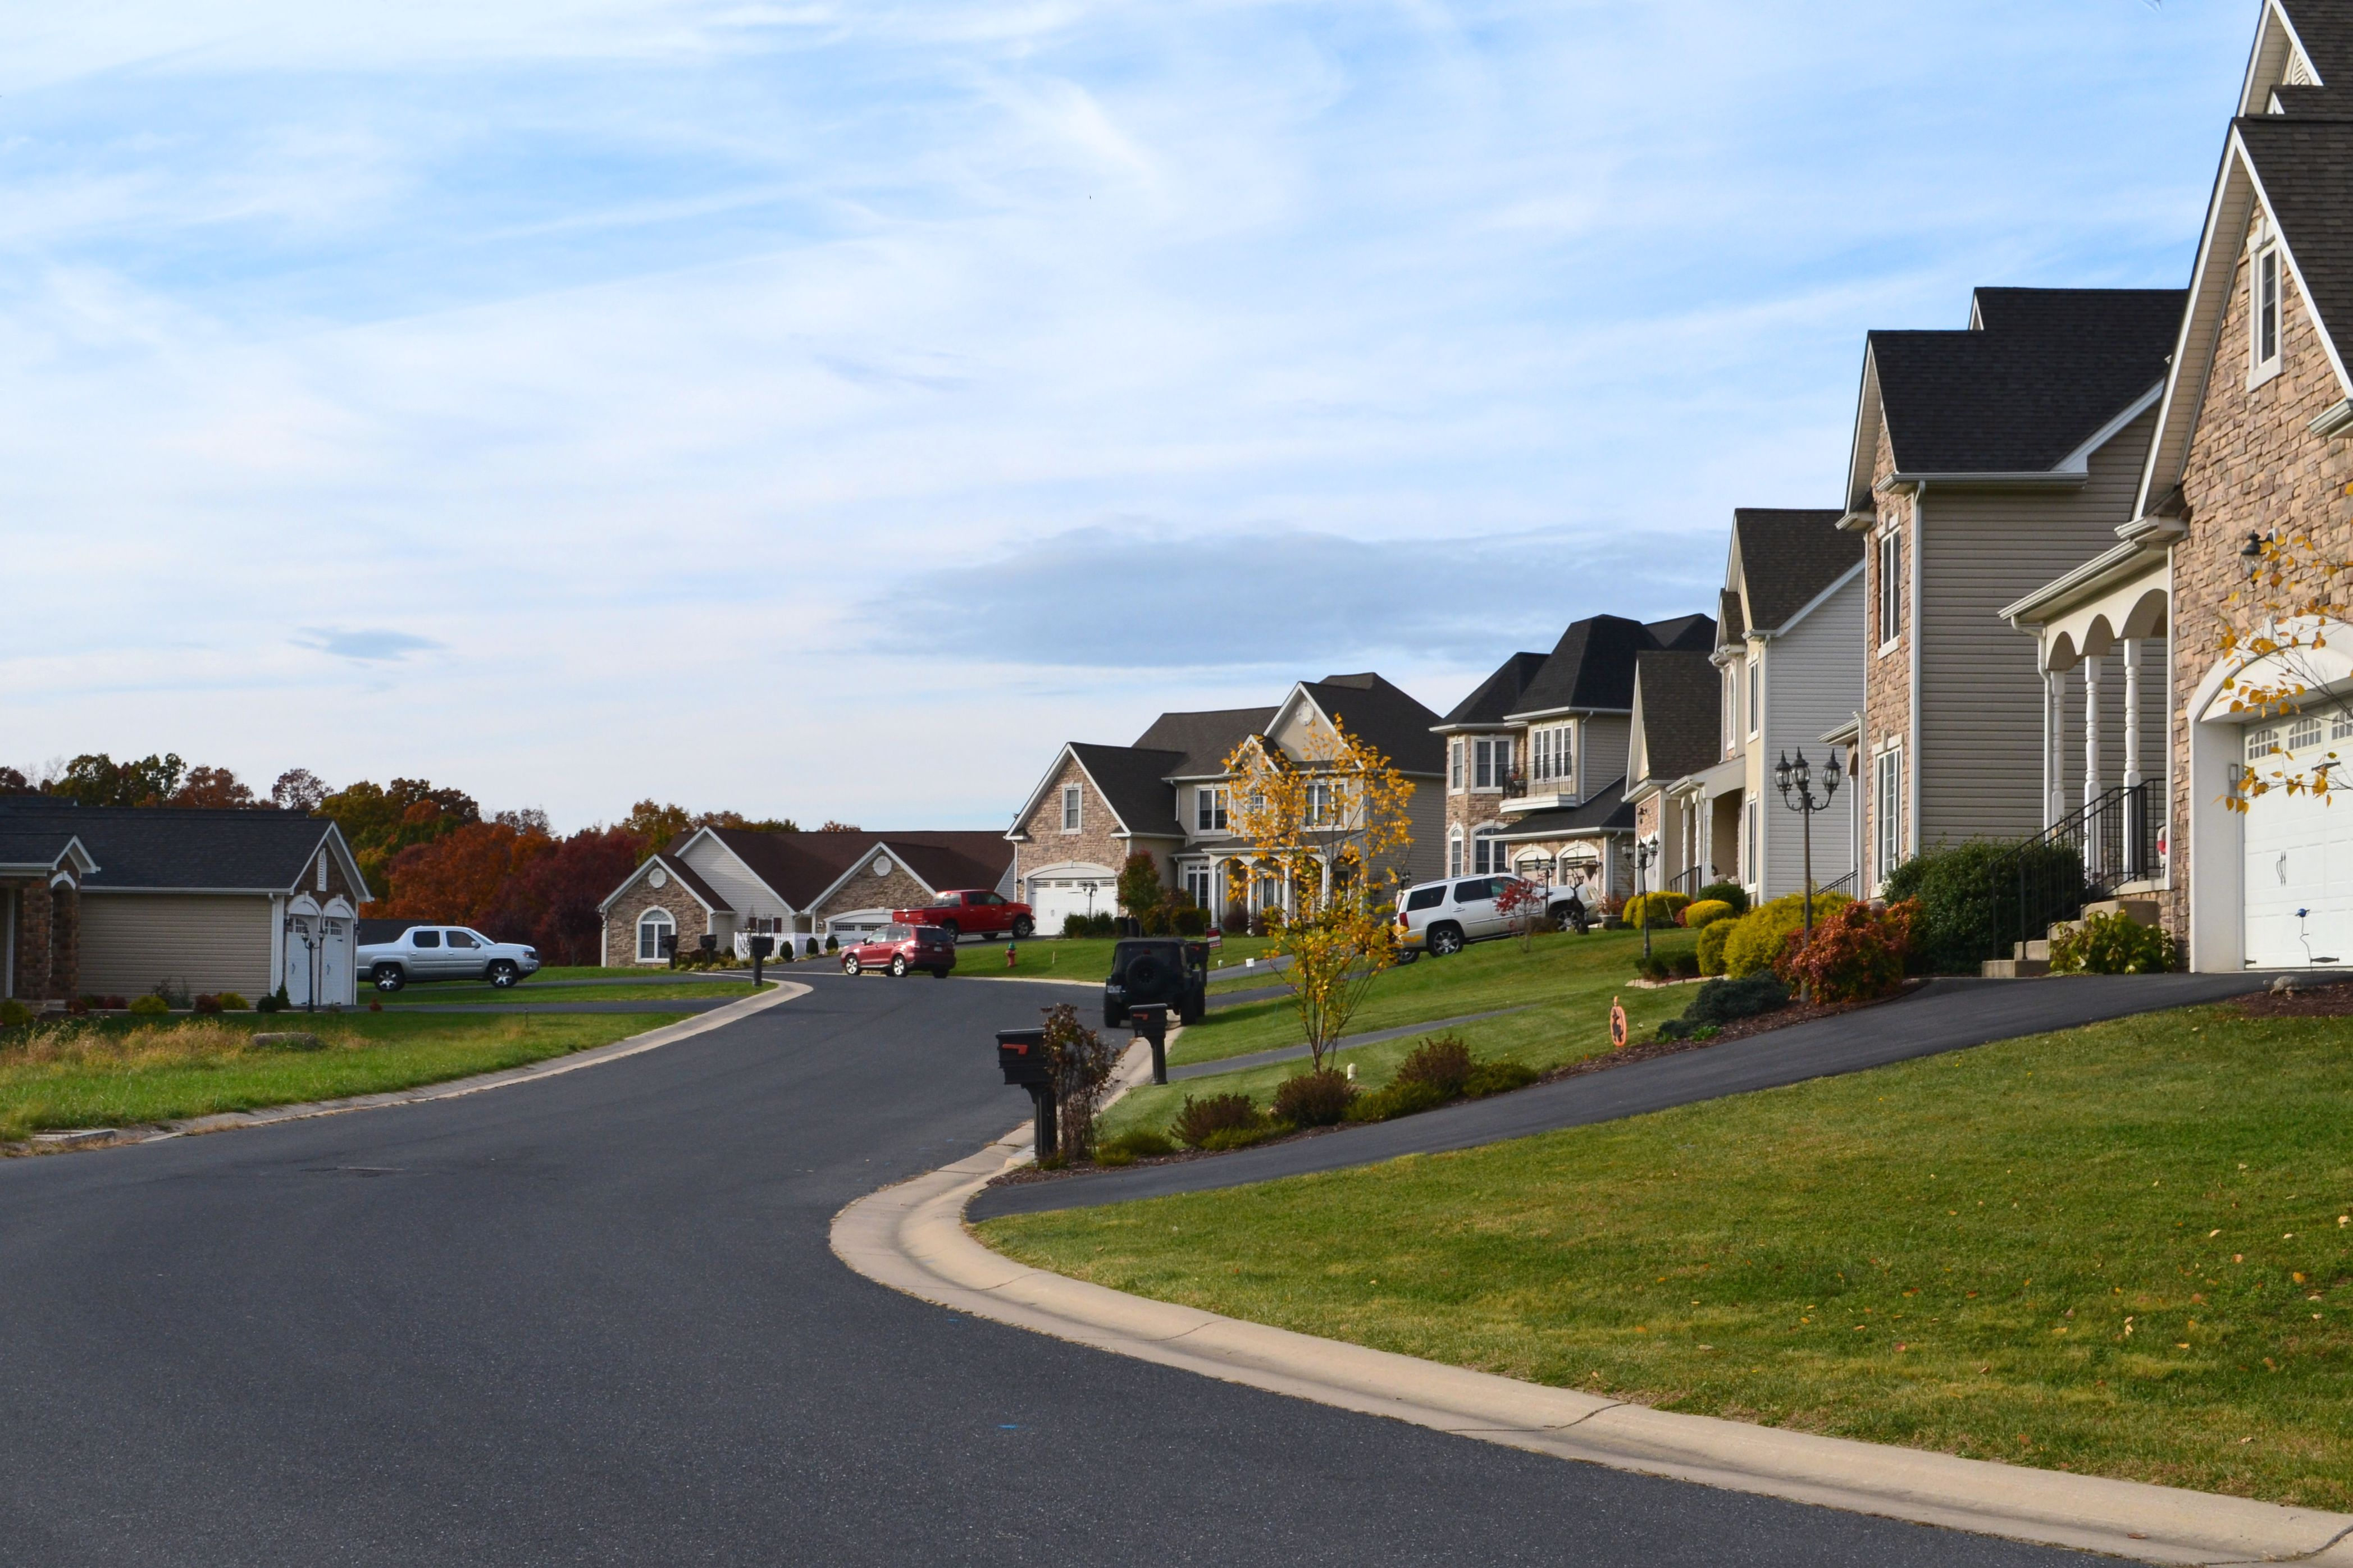 a-typical-middle-class-neighborhood-in-the-small-cities-and-suburbs-of-our-state-new-homes-houses-on_t20_KoavGv